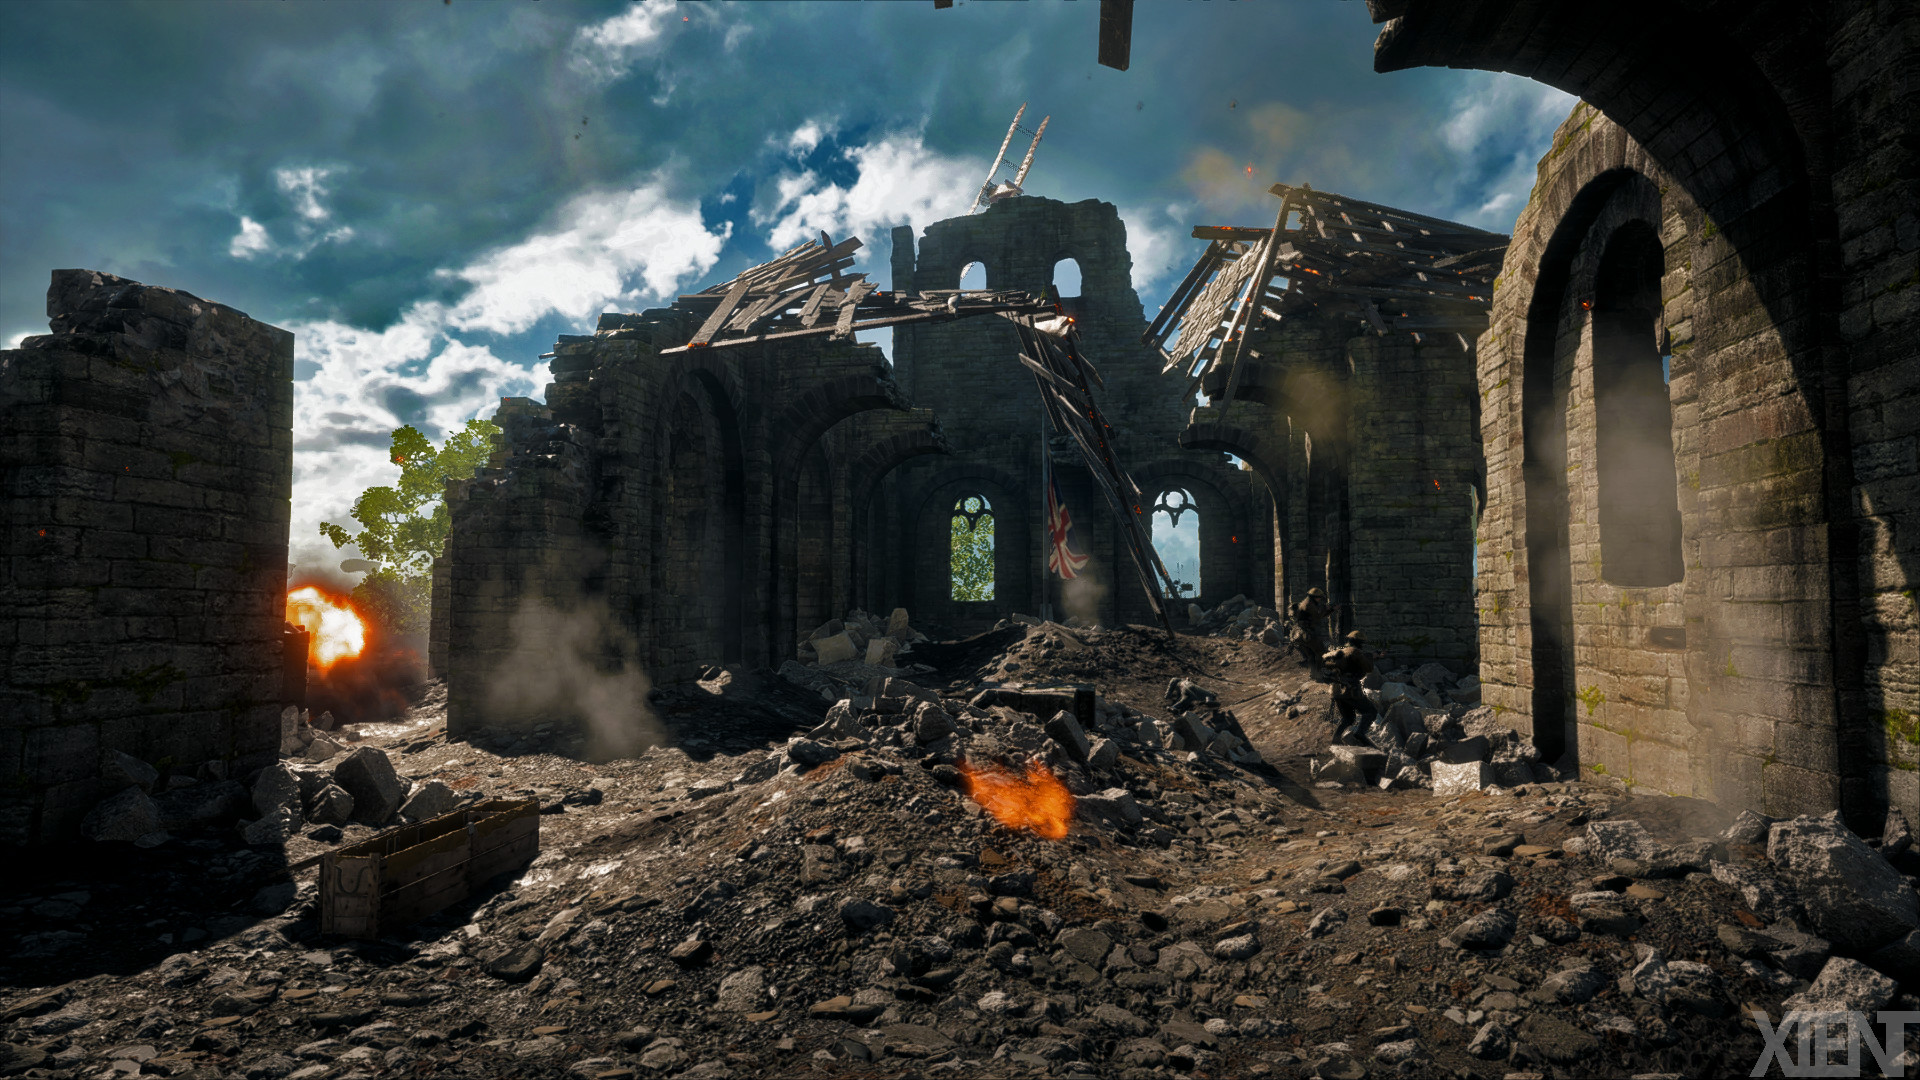 21 Battlefield: Bad Company 2 HD Wallpapers | Backgrounds .